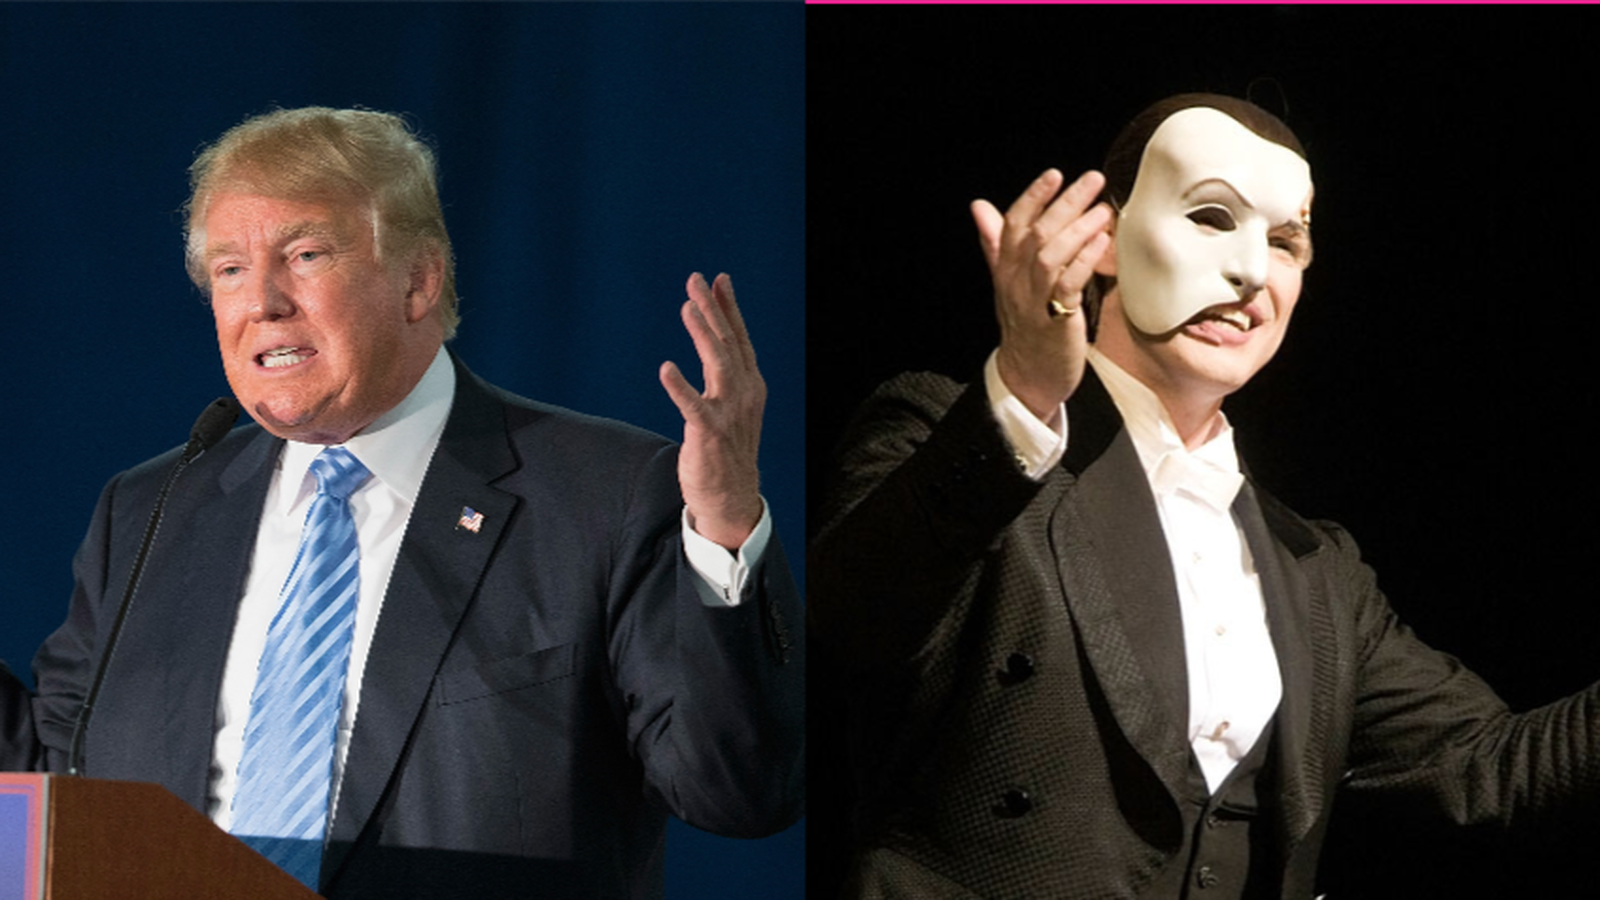 Why Donald Trump plays Phantom of the Opera at his rallies   Vox